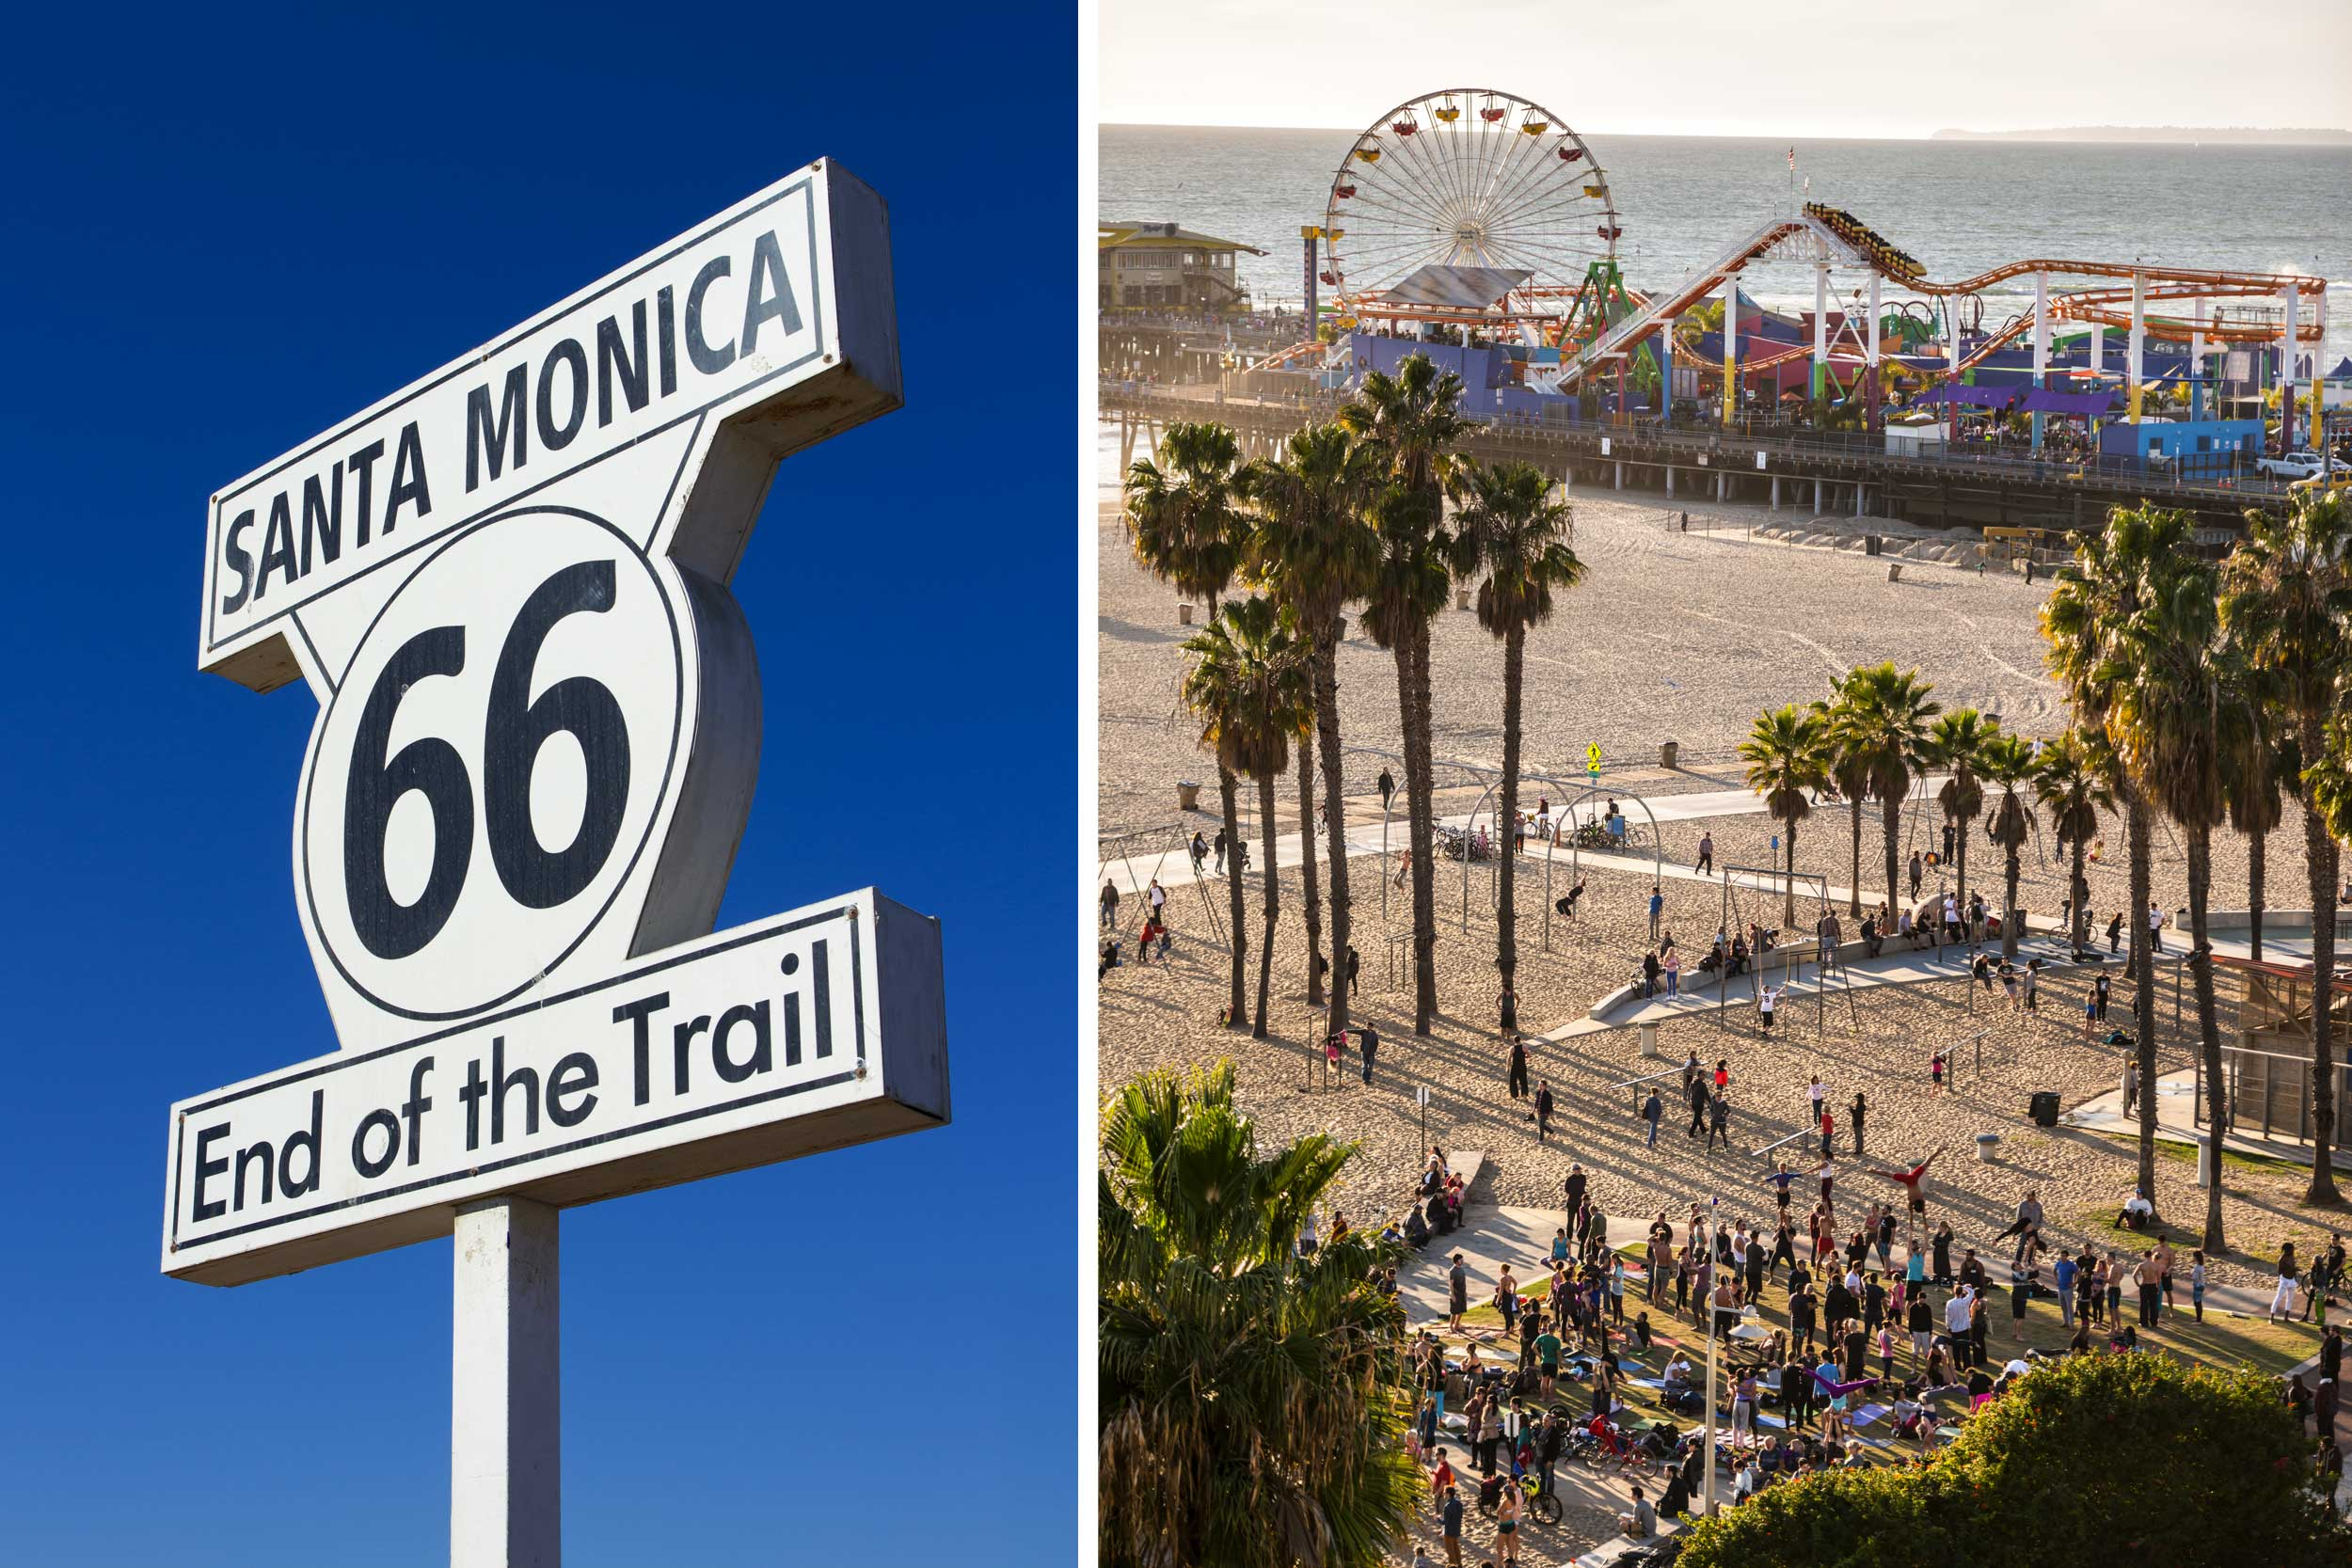 A montage of a road sign and a view over a beach to a playground with a ferris wheel by the water, Santa Monica, USA